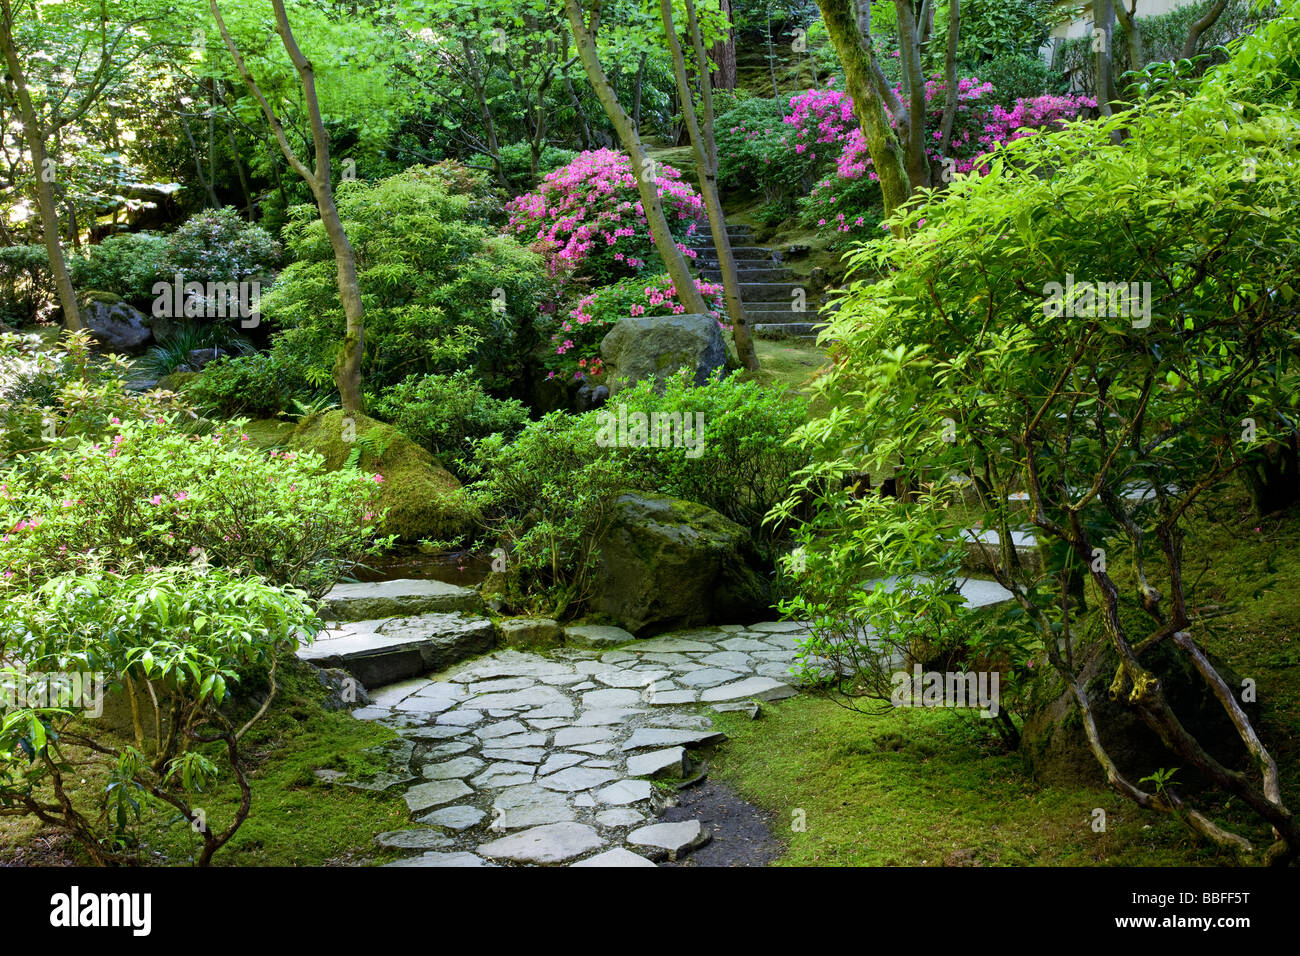 Japanese Garden Portland Oregon USA Stockbild